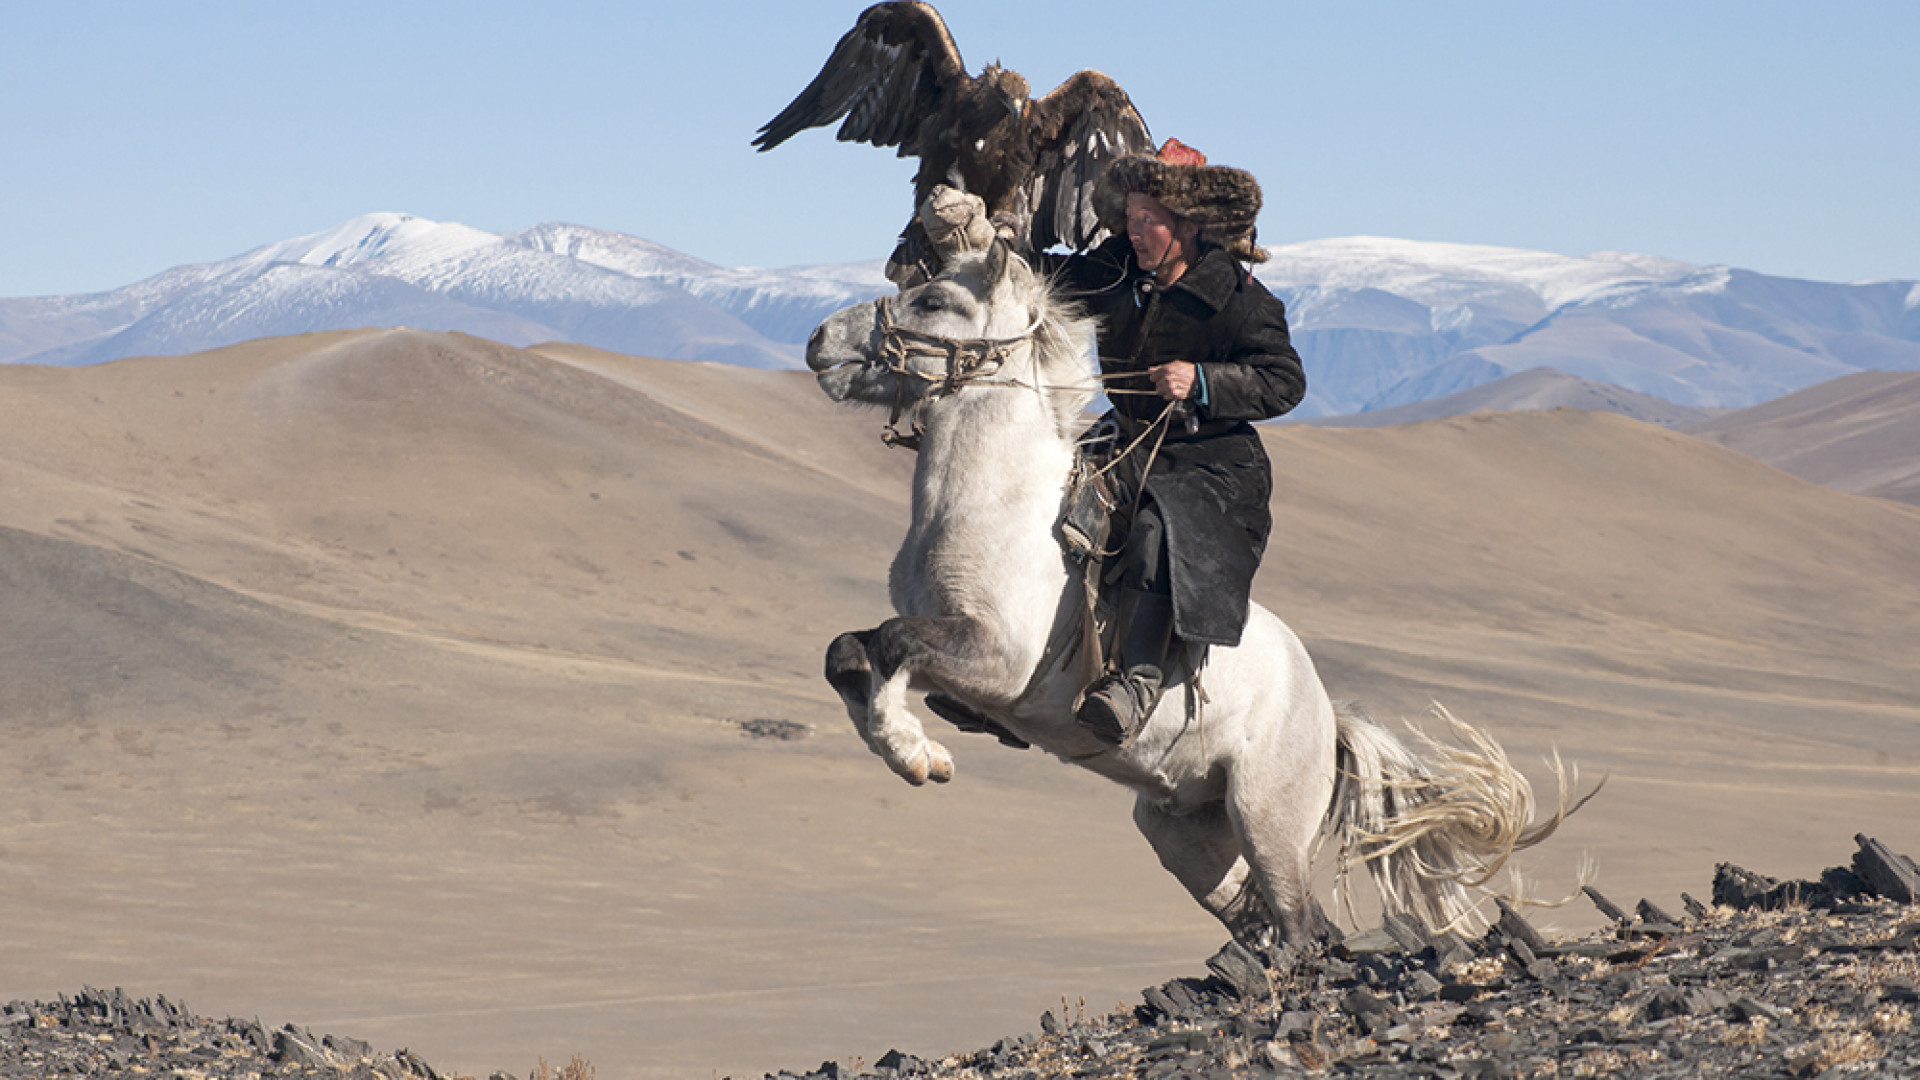 A tribesman catches a falcon while riding a horse in western Mongolia